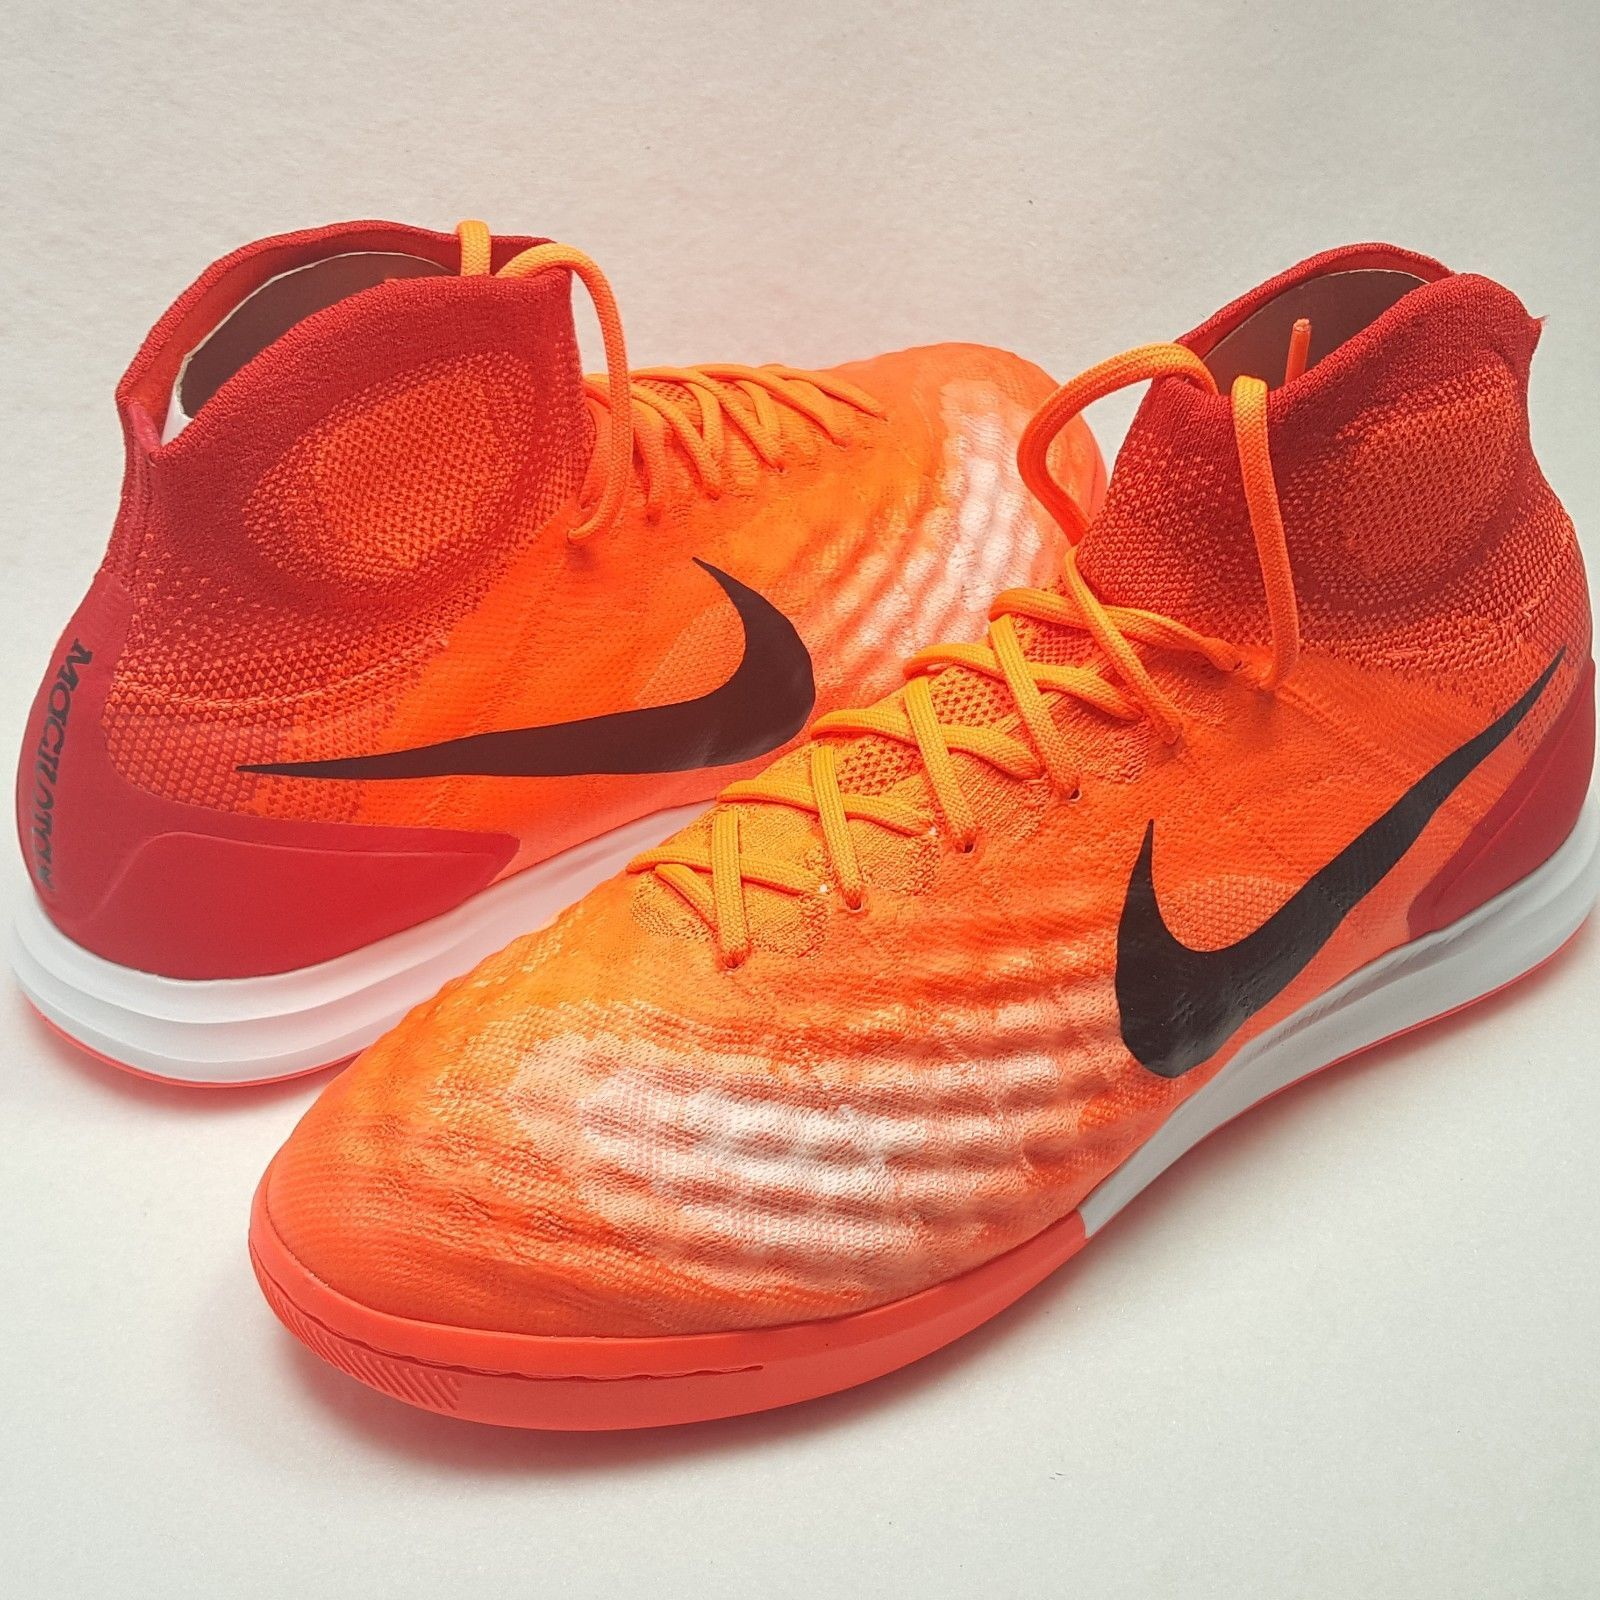 promo code d4583 5e9a0 Details about Nike MagistaX Proximo II IC Indoor ACC Soccer Cleats Crimson  Red 843957-805 SZ 9